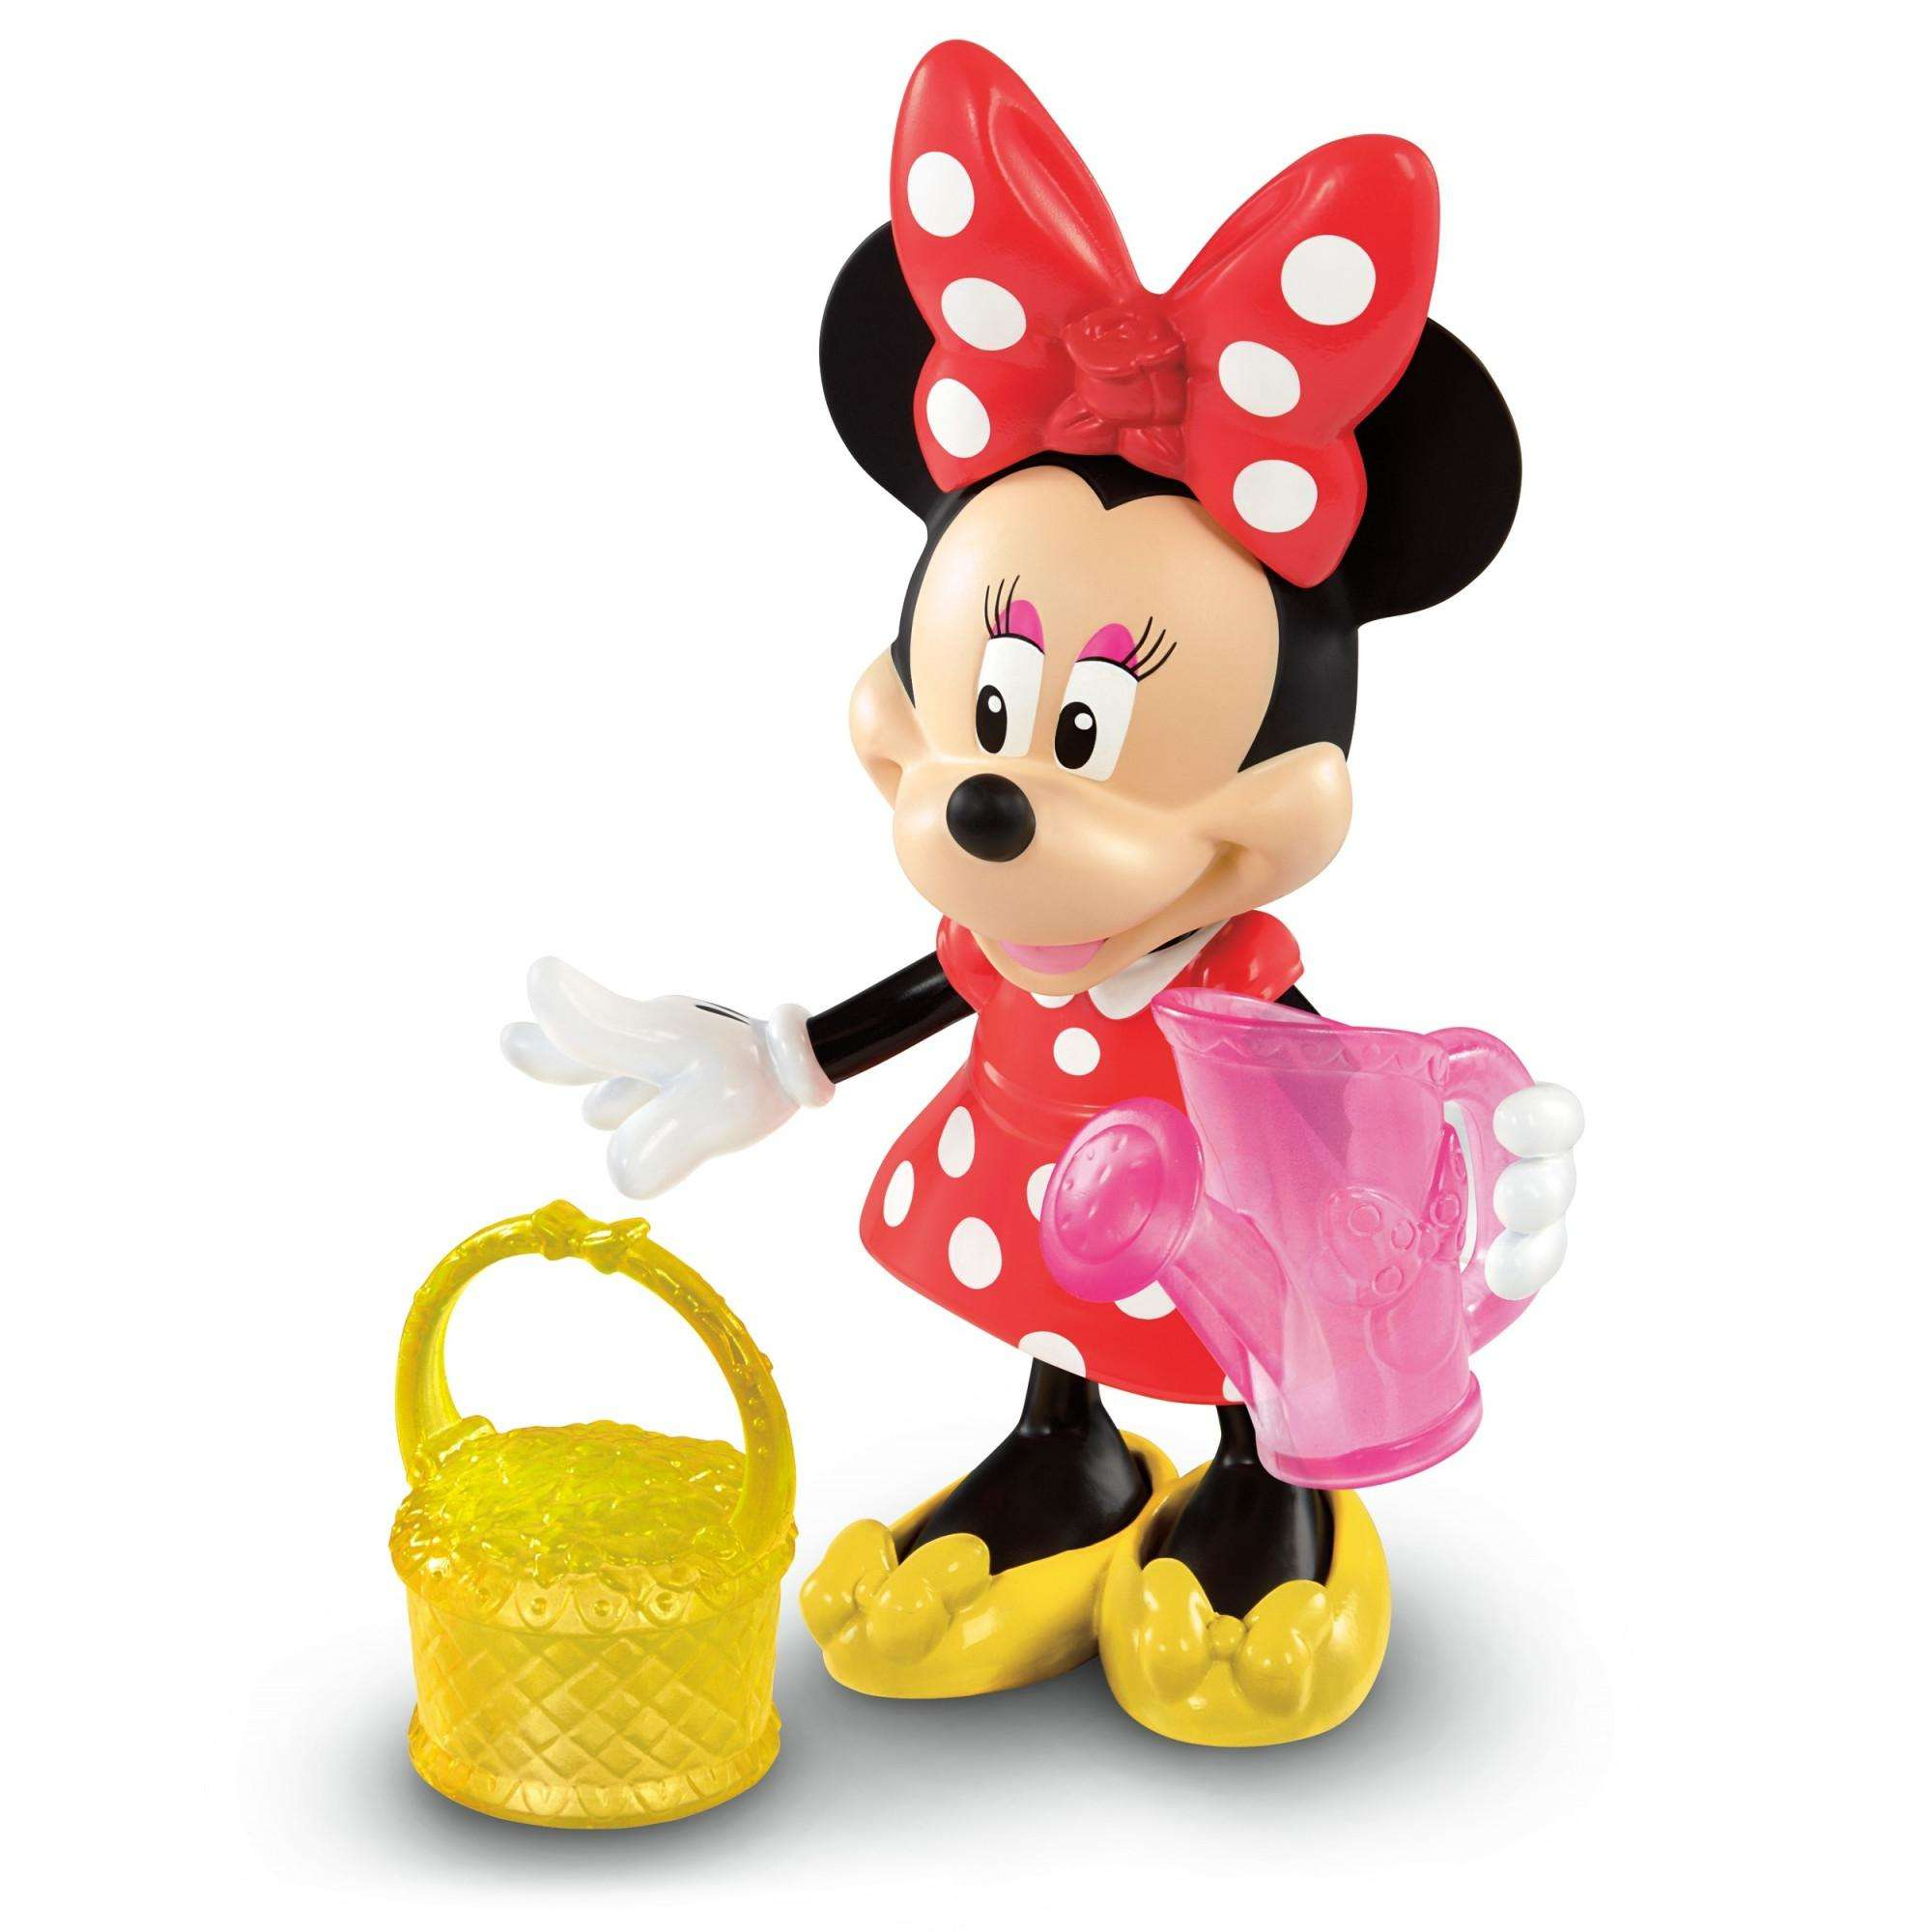 Disney Minnie Mouse Flower Garden Bow-Tique Play Set